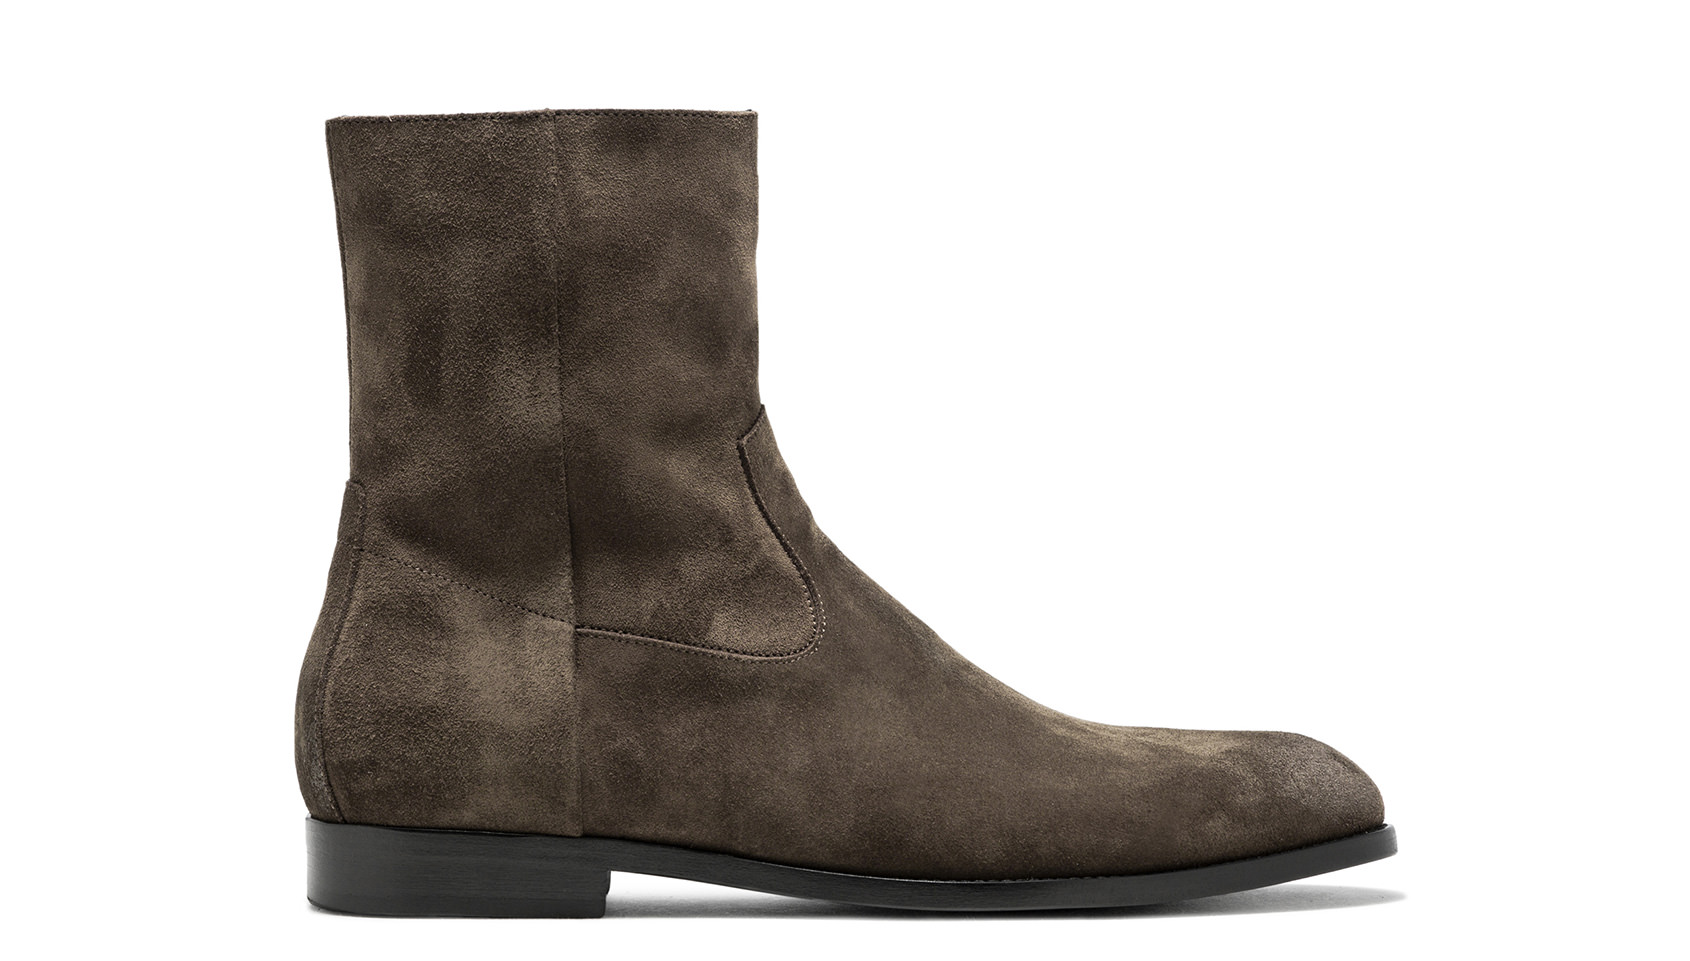 BUTTERO: POLACCO FLOYD IN SUEDE FORESTA